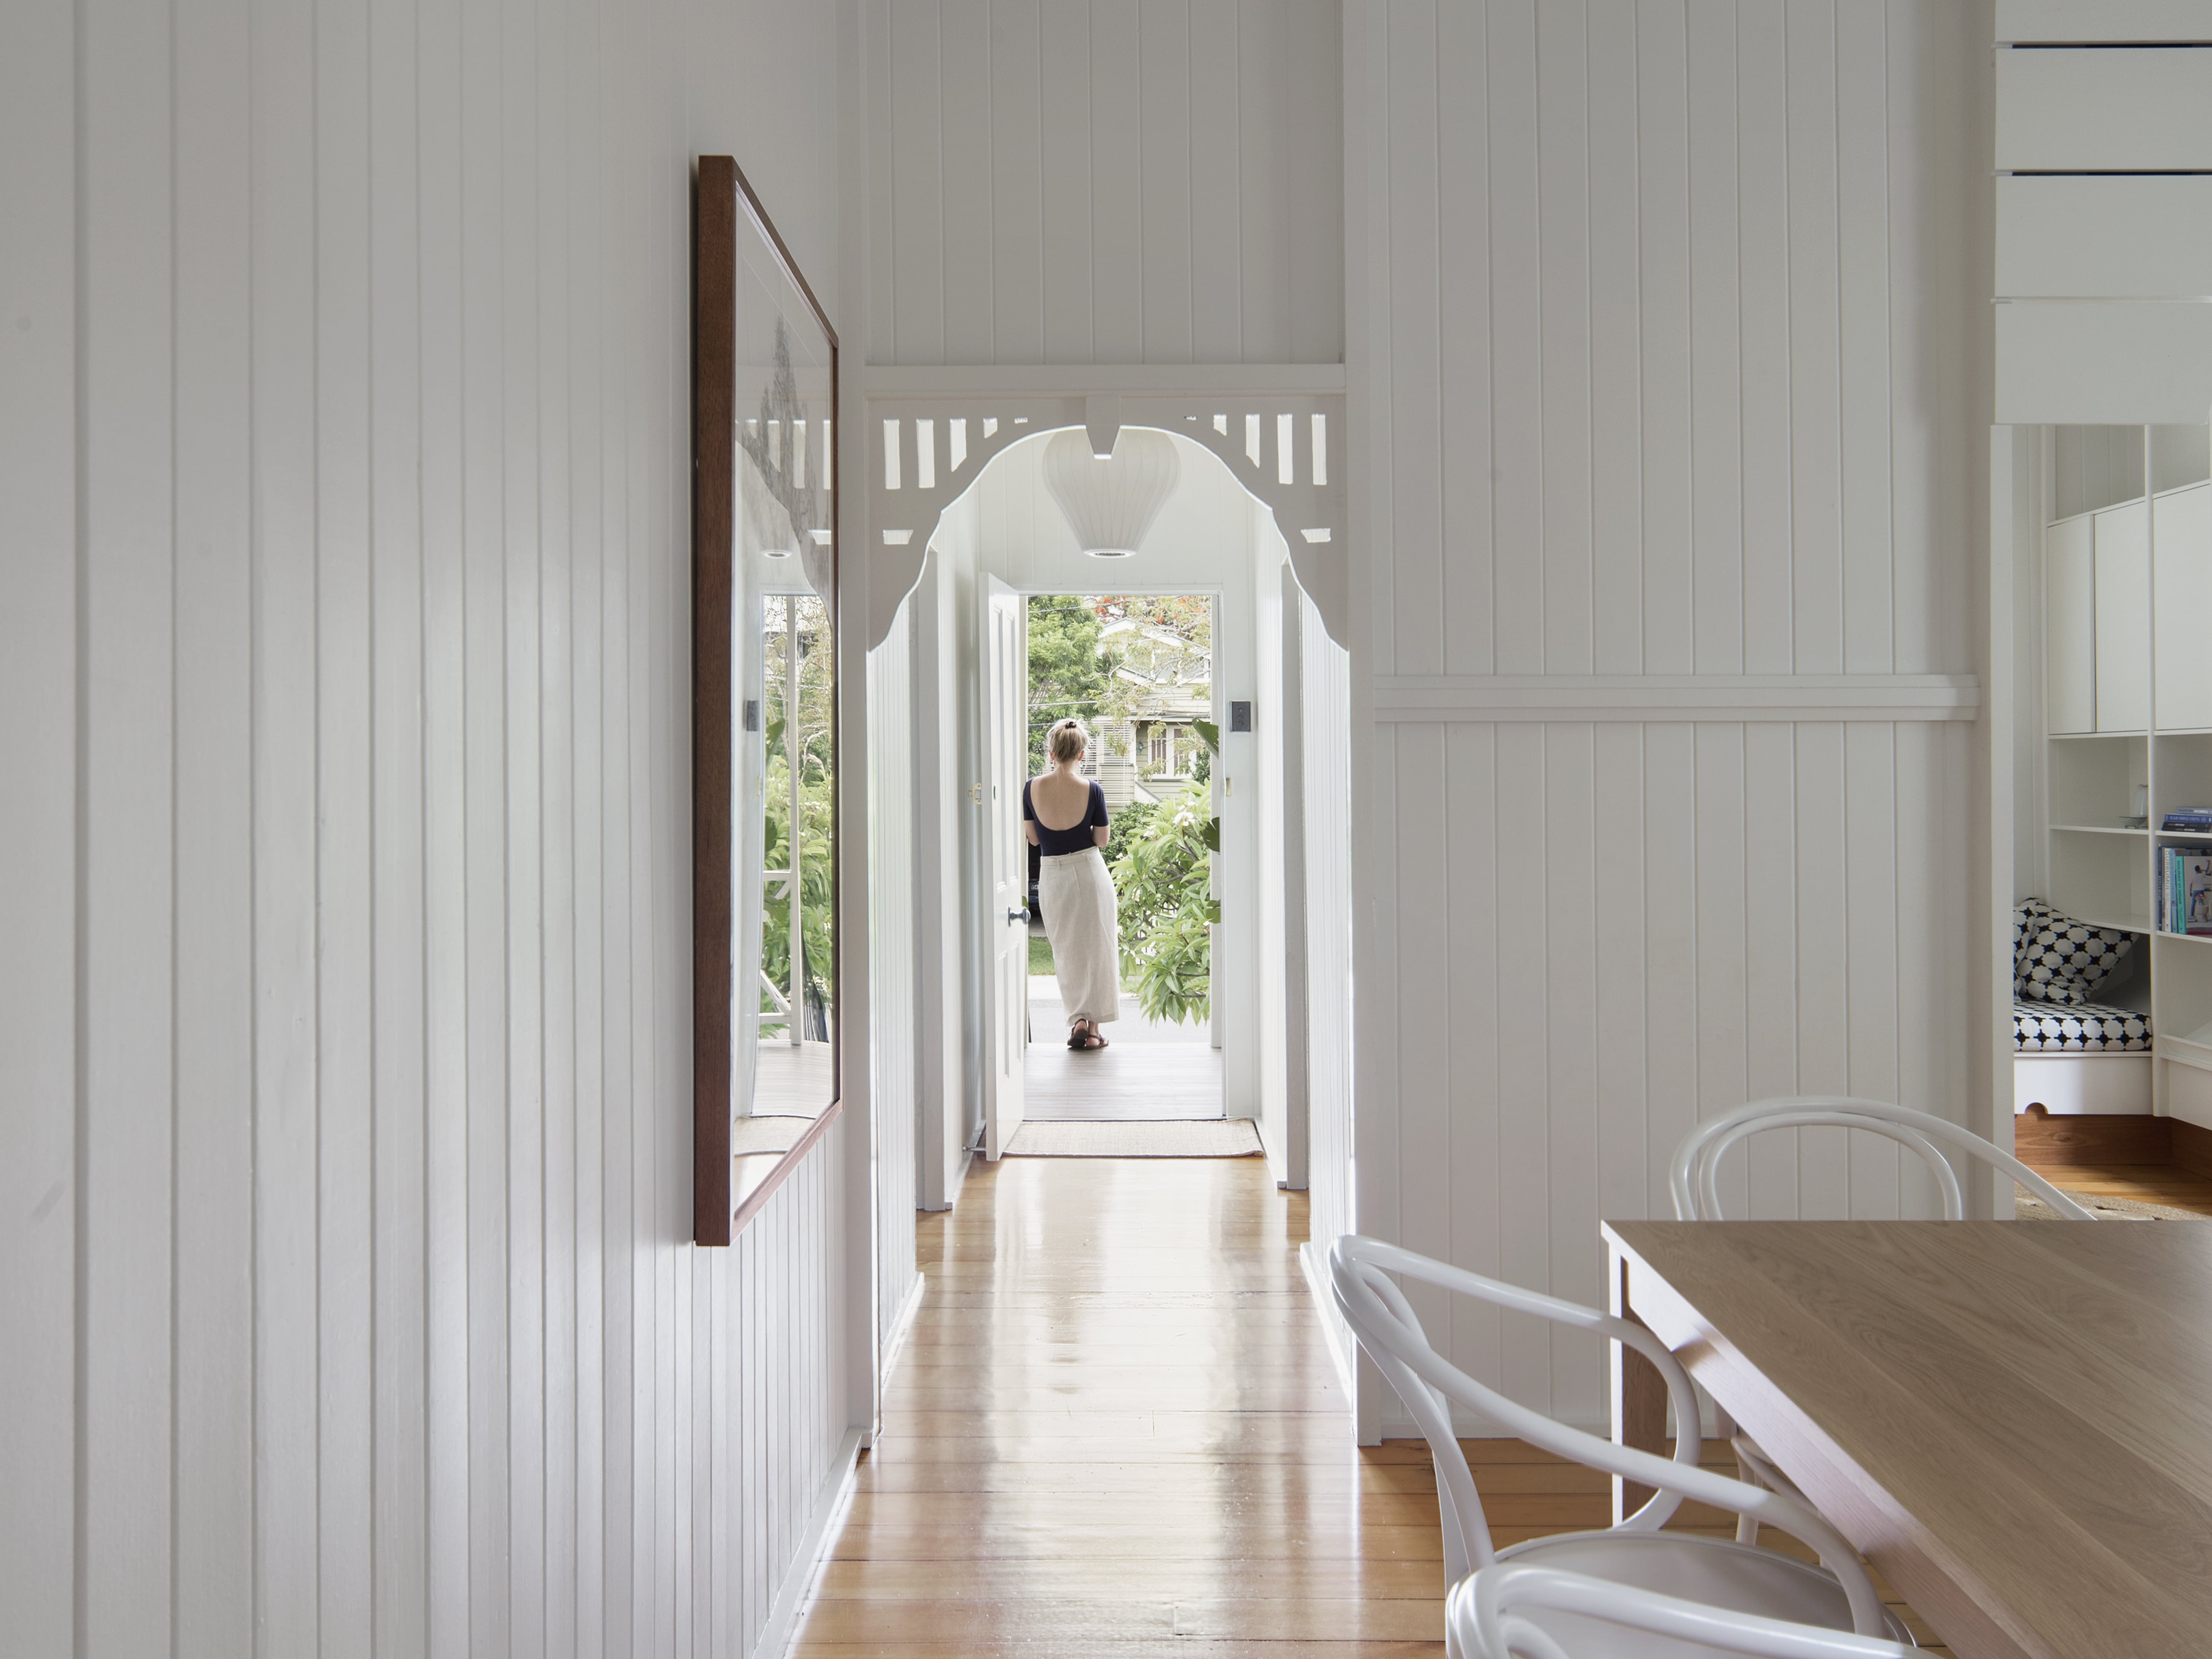 The Renovation Of A Run Down Workers Cottage In Brisbane's West End Transforming It Into Boutique Accomodation.